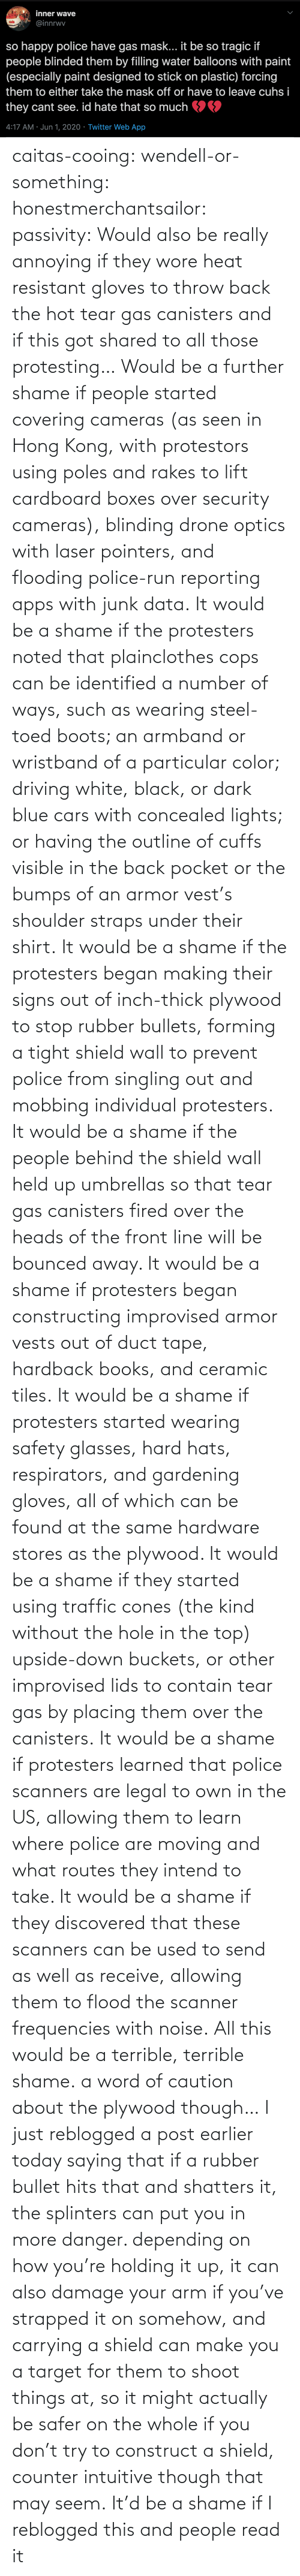 All This: caitas-cooing:  wendell-or-something: honestmerchantsailor:  passivity: Would also be really annoying if they wore heat resistant gloves to throw back the hot tear gas canisters and if this got shared to all those protesting… Would be a further shame if people started covering cameras (as seen in Hong Kong, with protestors using poles and rakes to lift cardboard boxes over security cameras), blinding drone optics with laser pointers, and flooding police-run reporting apps with junk data. It would be a shame if the protesters noted that plainclothes cops can be identified a number of ways, such as wearing steel-toed boots; an armband or wristband of a particular color; driving white, black, or dark blue cars with concealed lights; or having the outline of cuffs visible in the back pocket or the bumps of an armor vest's shoulder straps under their shirt. It would be a shame if the protesters began making their signs out of inch-thick plywood to stop rubber bullets, forming a tight shield wall to prevent police from singling out and mobbing individual protesters. It would be a shame if the people behind the shield wall held up umbrellas so that tear gas canisters fired over the heads of the front line will be bounced away. It would be a shame if protesters began constructing improvised armor vests out of duct tape, hardback books, and ceramic tiles. It would be a shame if protesters started wearing safety glasses, hard hats, respirators, and gardening gloves, all of which can be found at the same hardware stores as the plywood. It would be a shame if they started using traffic cones (the kind without the hole in the top) upside-down buckets, or other improvised lids to contain tear gas by placing them over the canisters. It would be a shame if protesters learned that police scanners are legal to own in the US, allowing them to learn where police are moving and what routes they intend to take. It would be a shame if they discovered that these scanners can be used to send as well as receive, allowing them to flood the scanner frequencies with noise. All this would be a terrible, terrible shame.    a word of caution about the plywood though… I just reblogged a post earlier today saying that if a rubber bullet hits that and shatters it, the splinters can put you in more danger. depending on how you're holding it up, it can also damage your arm if you've strapped it on somehow, and carrying a shield can make you a target for them to shoot things at, so it might actually be safer on the whole if you don't try to construct a shield, counter intuitive though that may seem.    It'd be a shame if I reblogged this and people read it